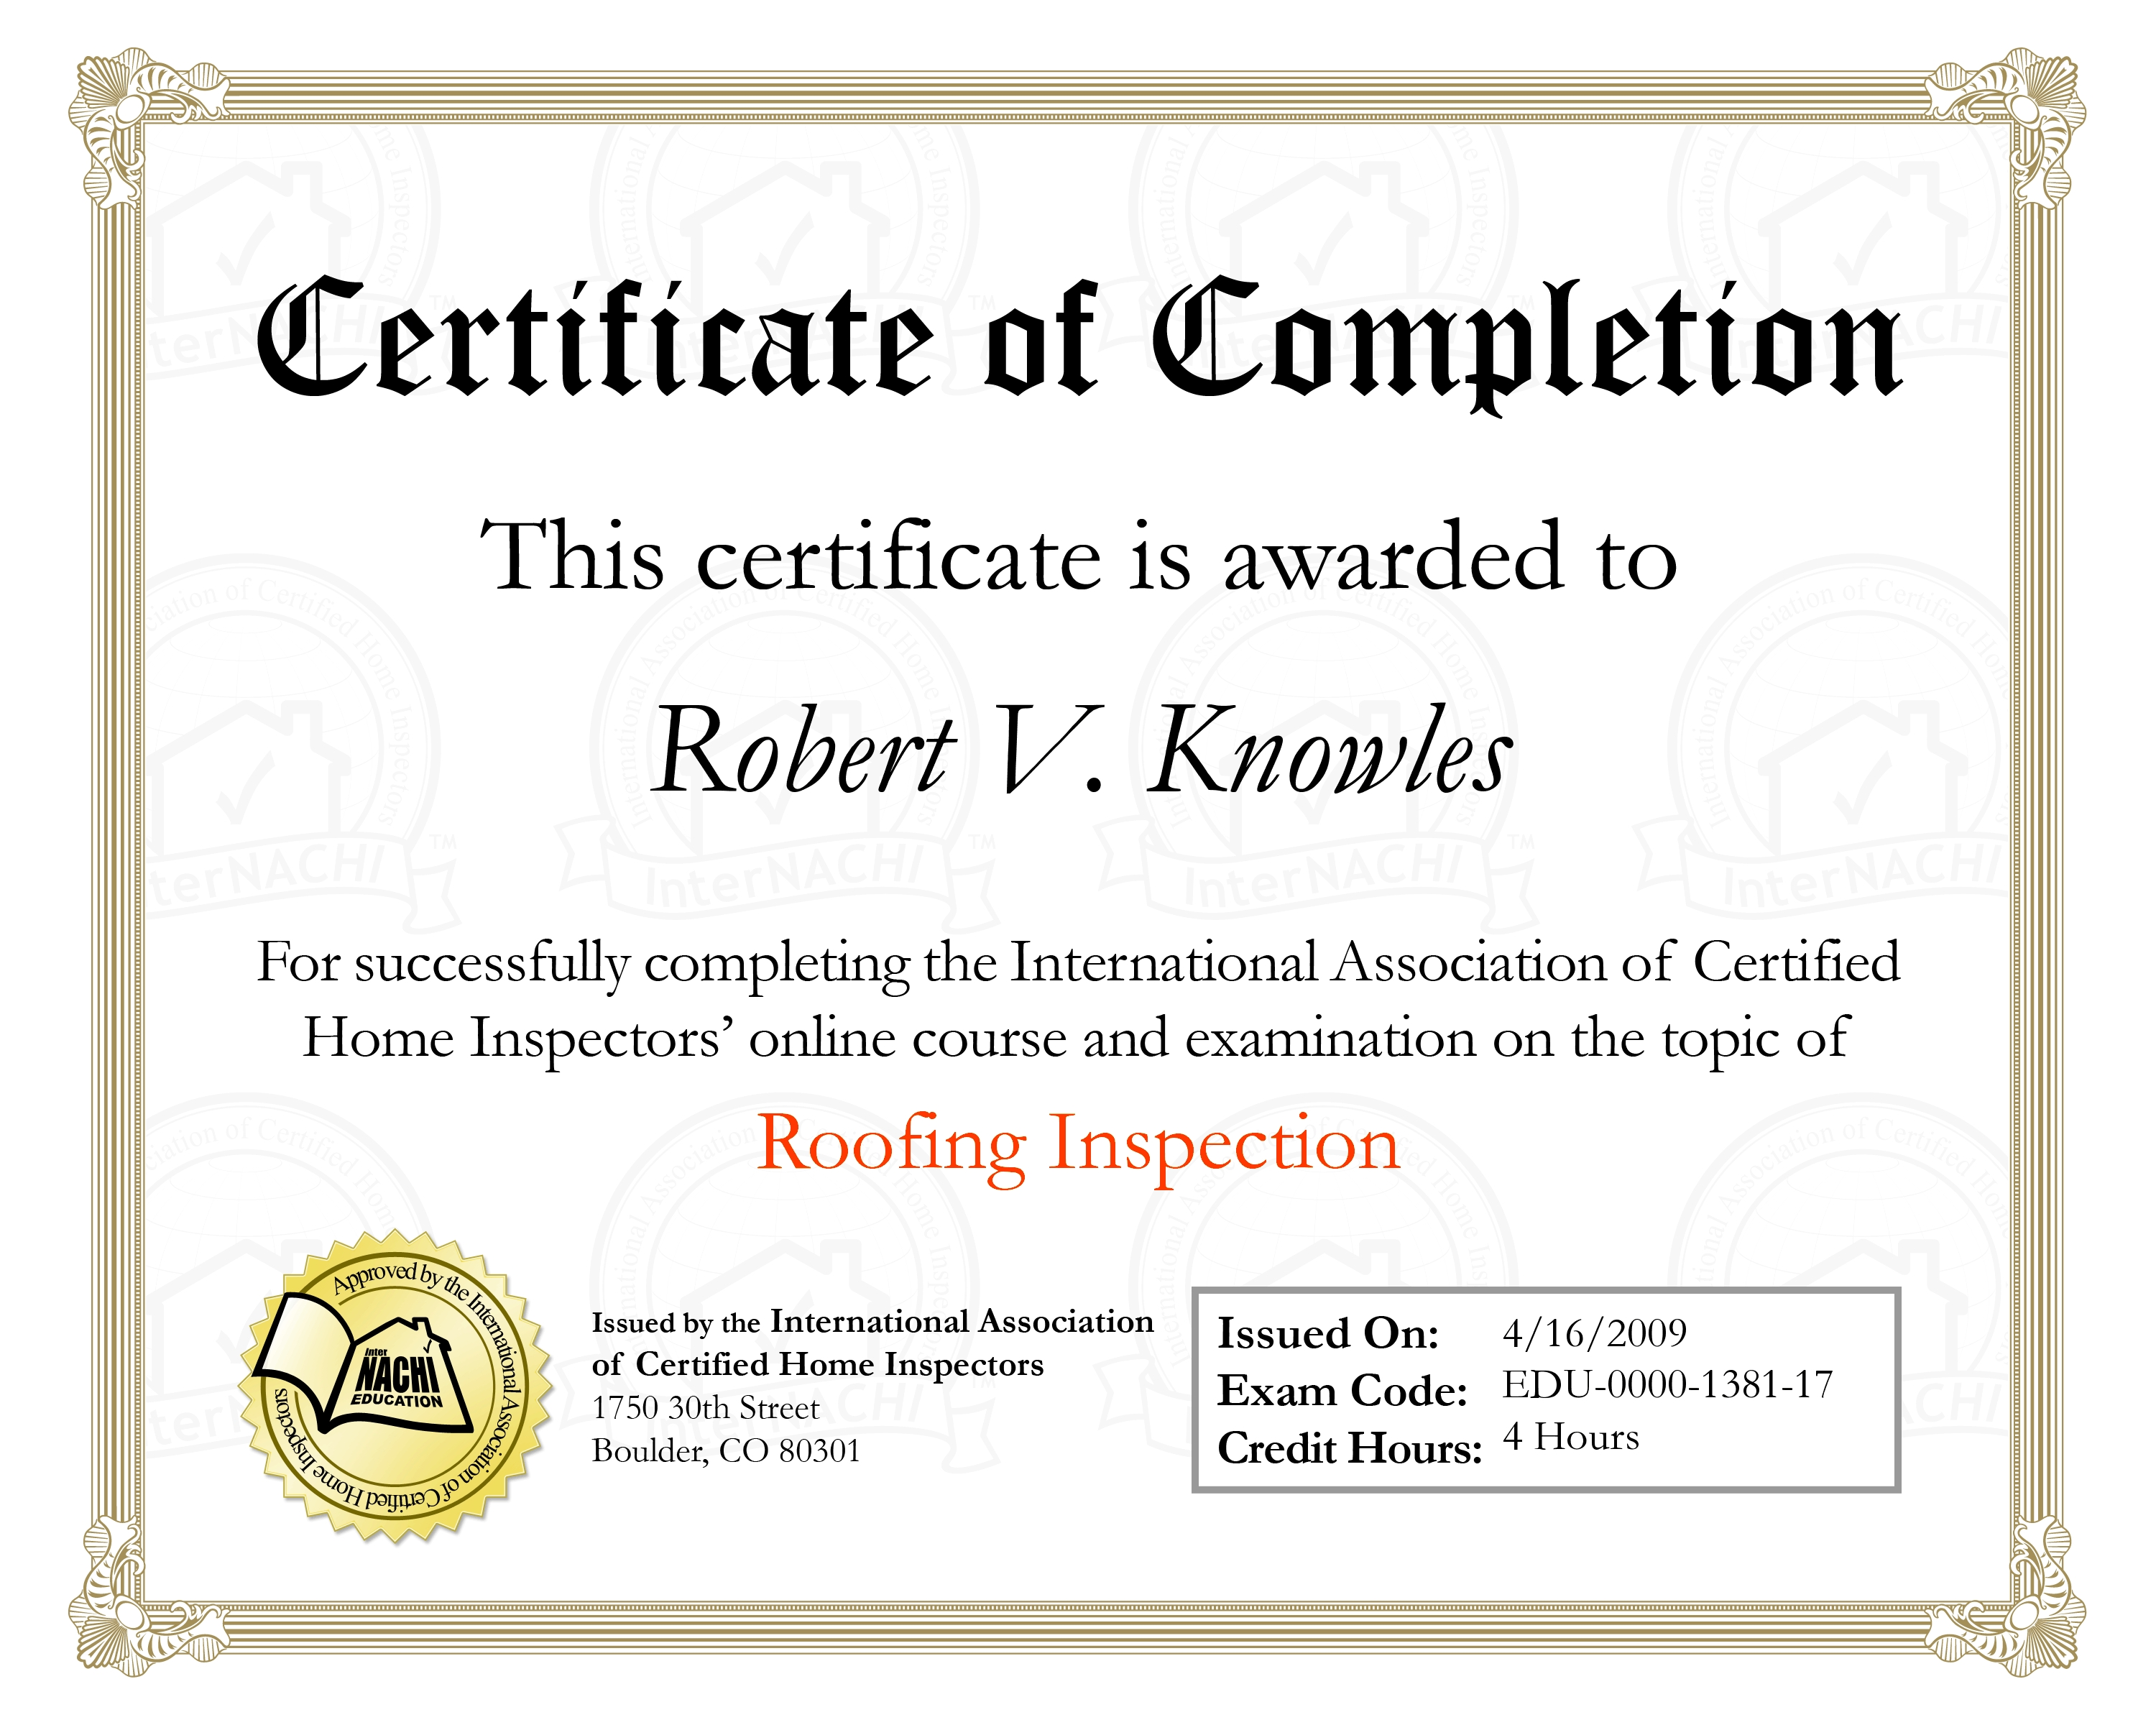 Knowles Inspection Services